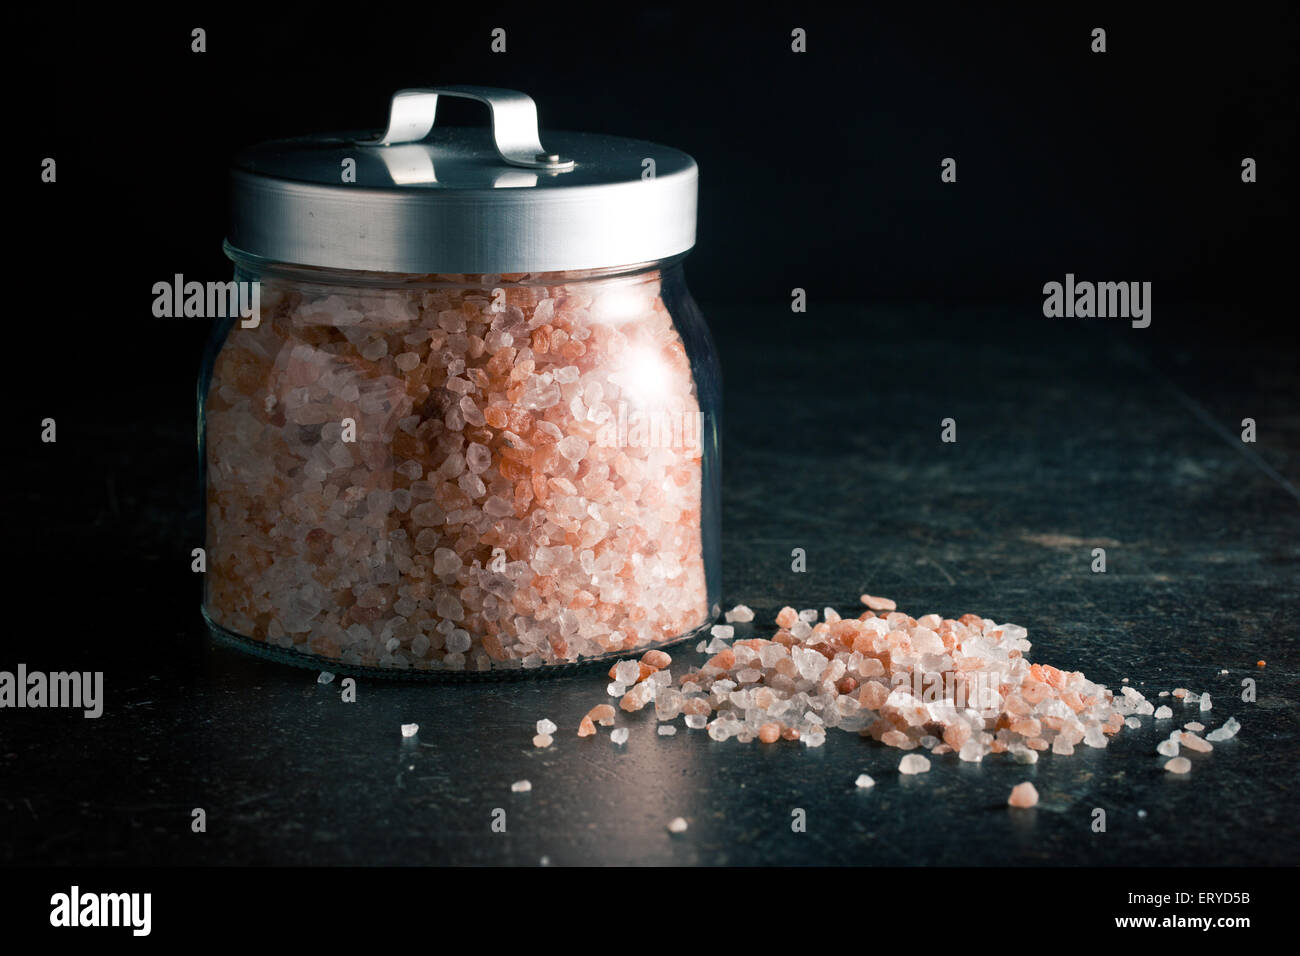 Himalayan salt in jar on kitchen table - Stock Image